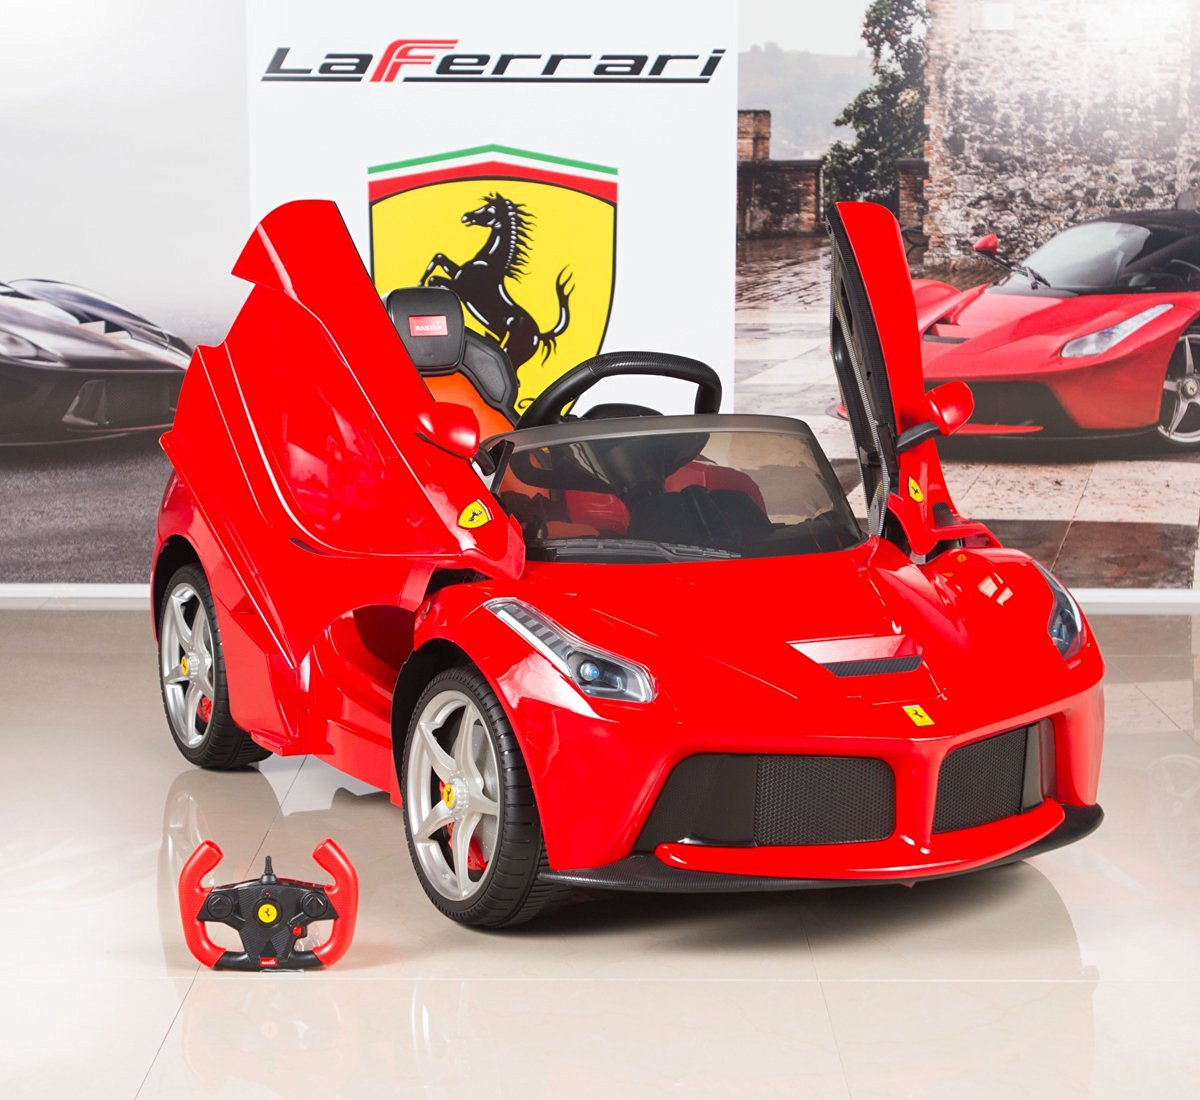 Ferrari Electric Ride On Car - Luxury Cars for Kids